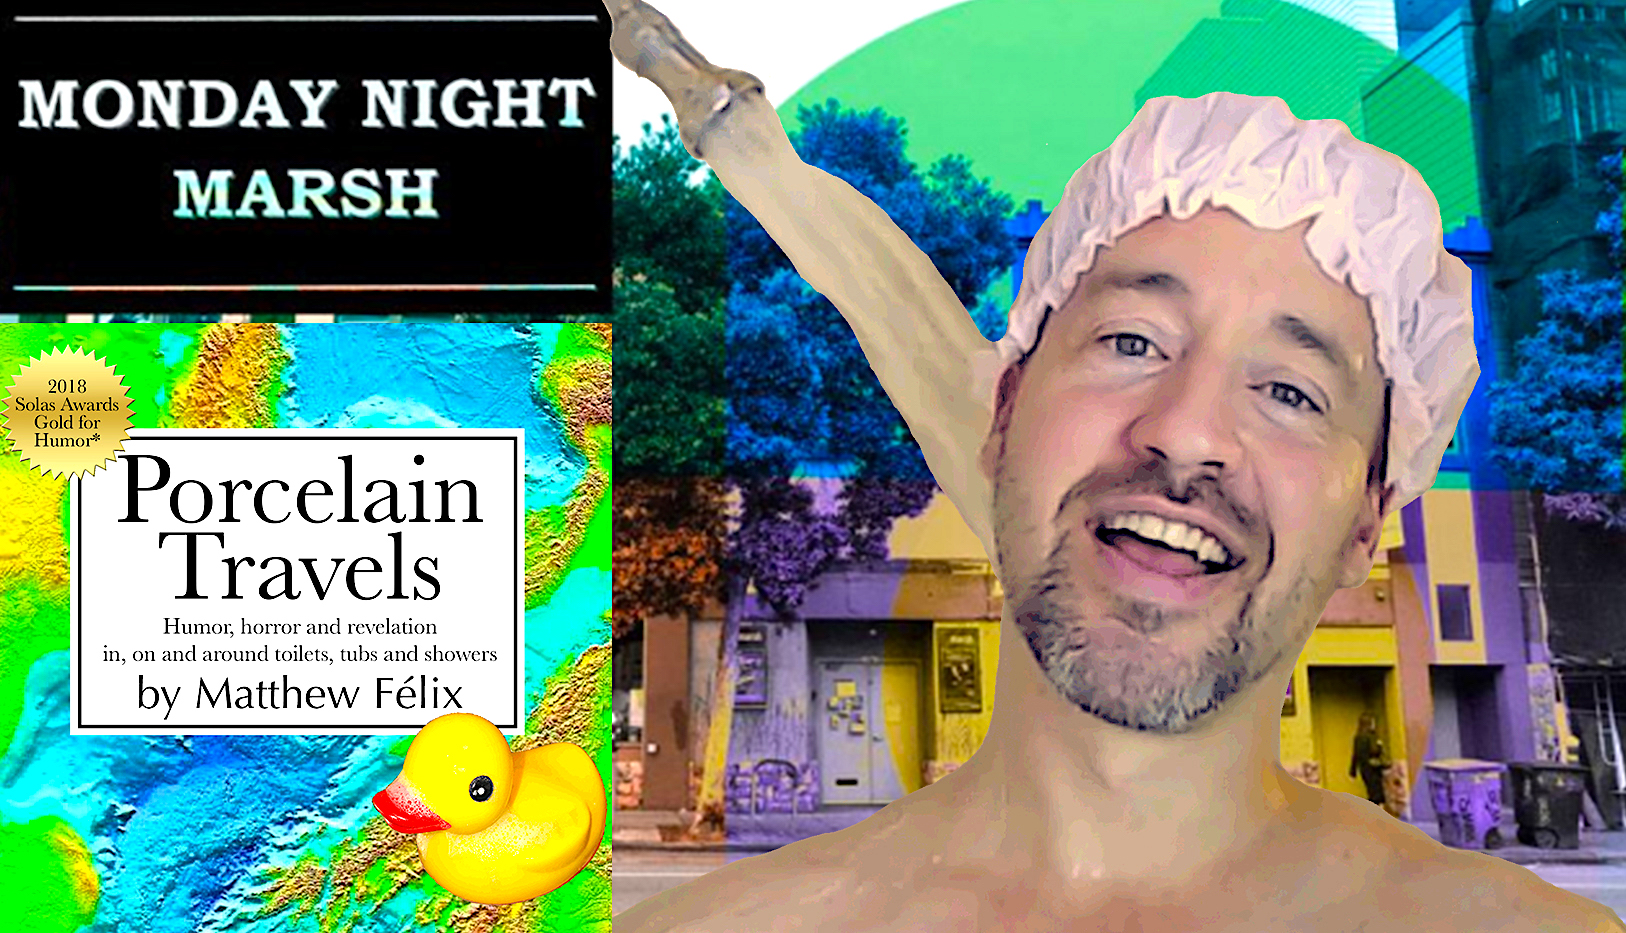 """""""Porcelain Travels"""" LIVE! 🌎🐥 Excited to announce that on March 11 and 25 """"author Matthew Felix"""" will be performing a solo show based on my new book, Porcelain Travels, live on stage!!! The show will be part of San Francisco's Marsh theater's Monday Night Marsh, a program spotlighting works-in-progress of emerging solo performers."""